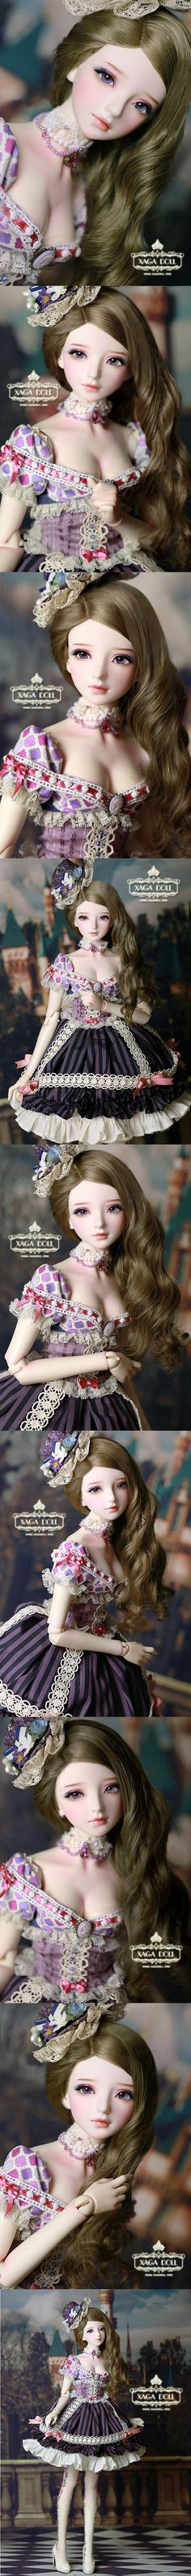 BJD Camille Girl 65cm Ball-Jointed Doll_Silvery Obsidian_XAGA DOLL_DOLL_Ball Jointed Dolls (BJD) company-Legenddoll